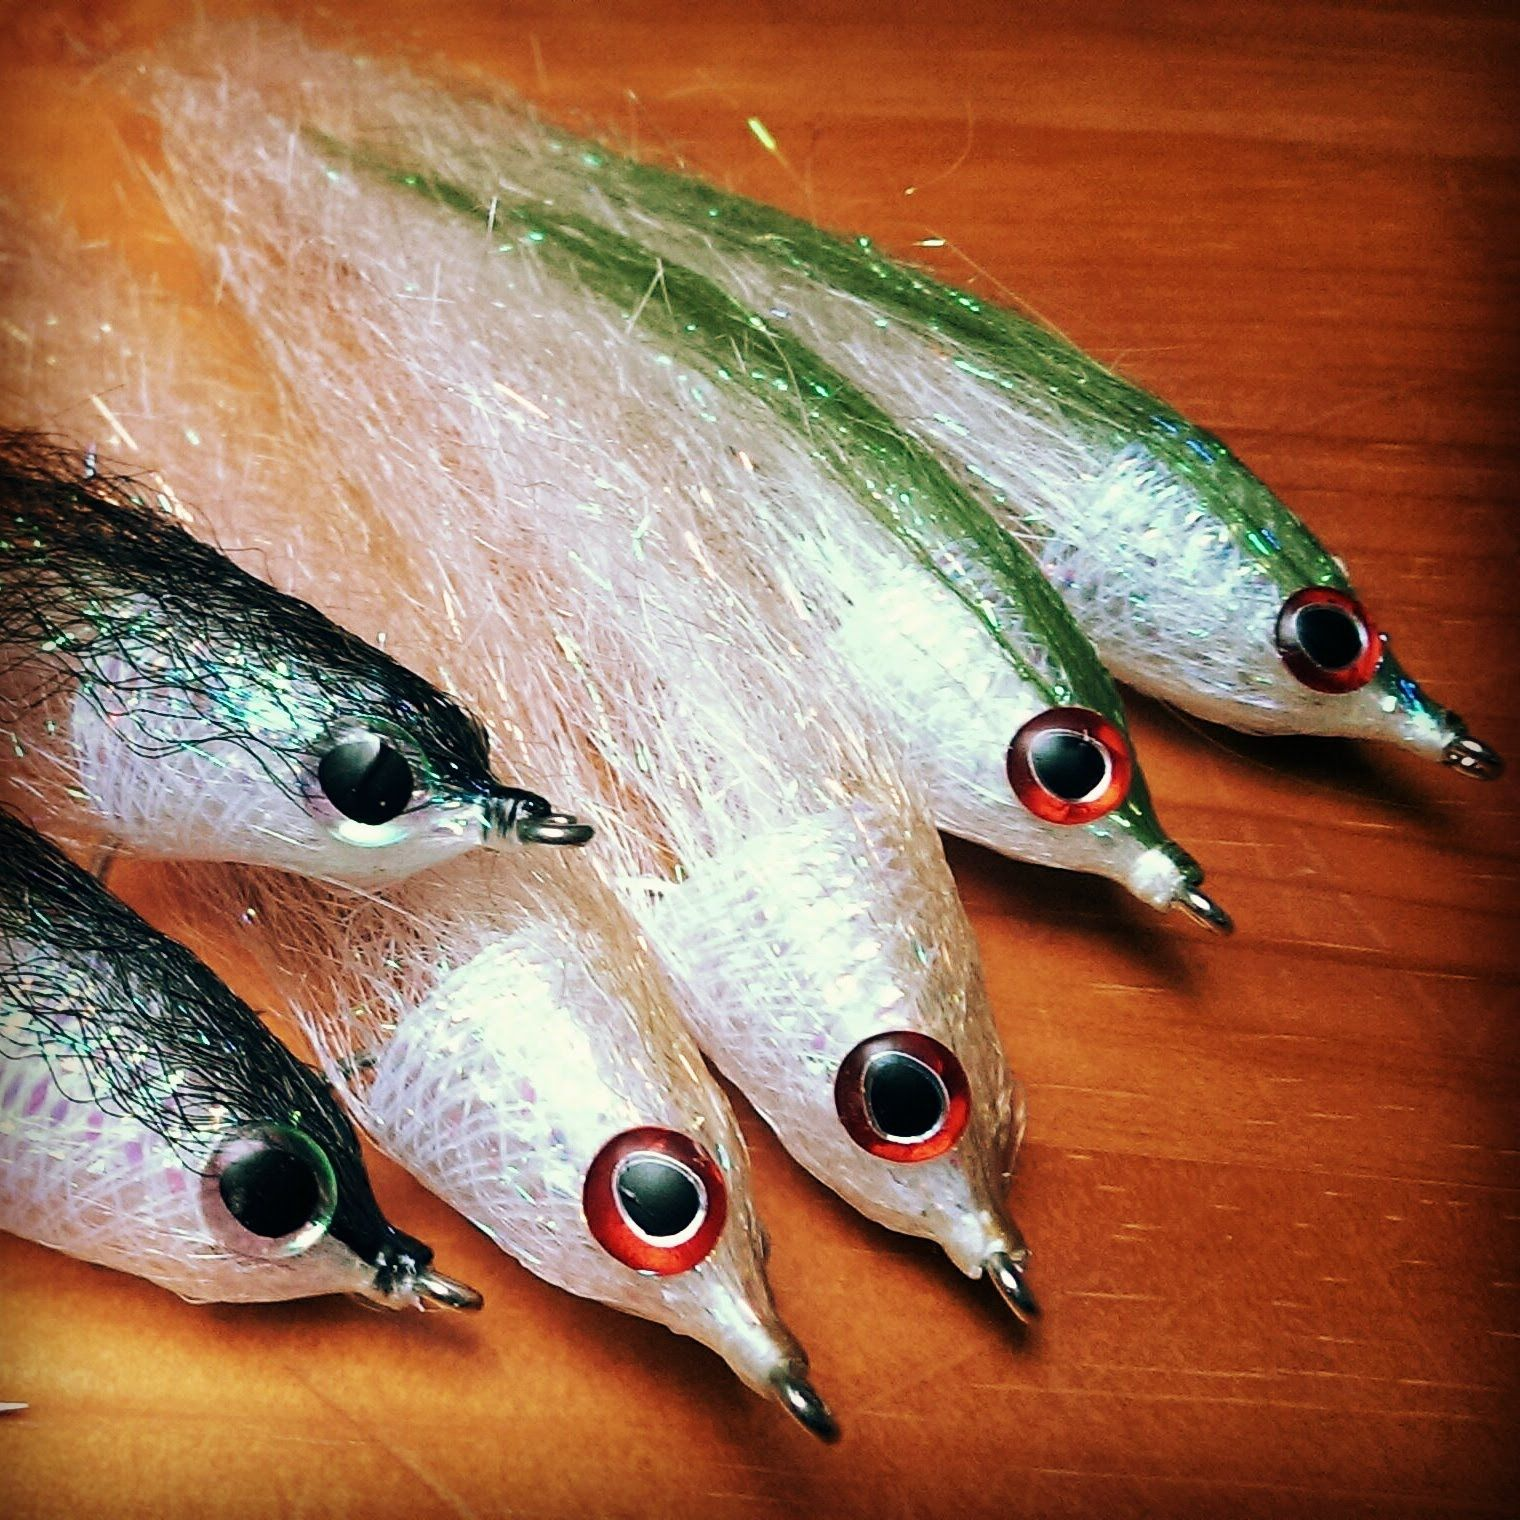 Fat boy mullet how to tie a bait fish fly fishing for How to fly fish for bass